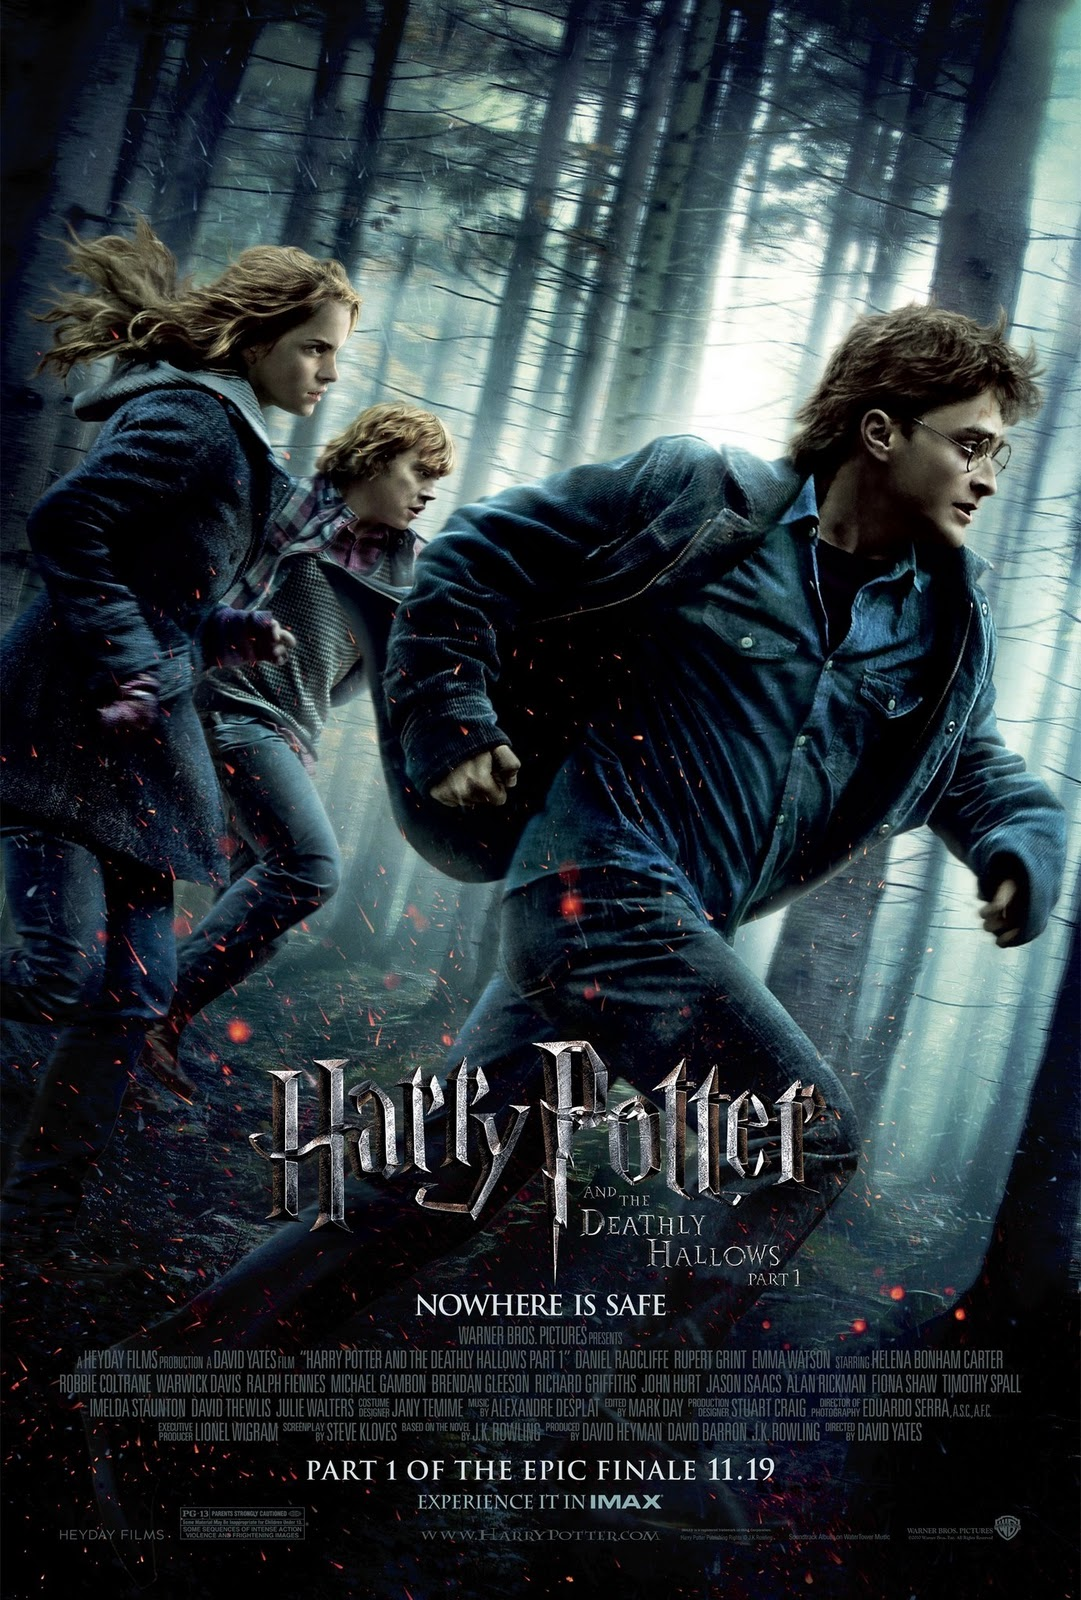 Harry Potter and the Deathly Hallows: Part I - Movies Maniac